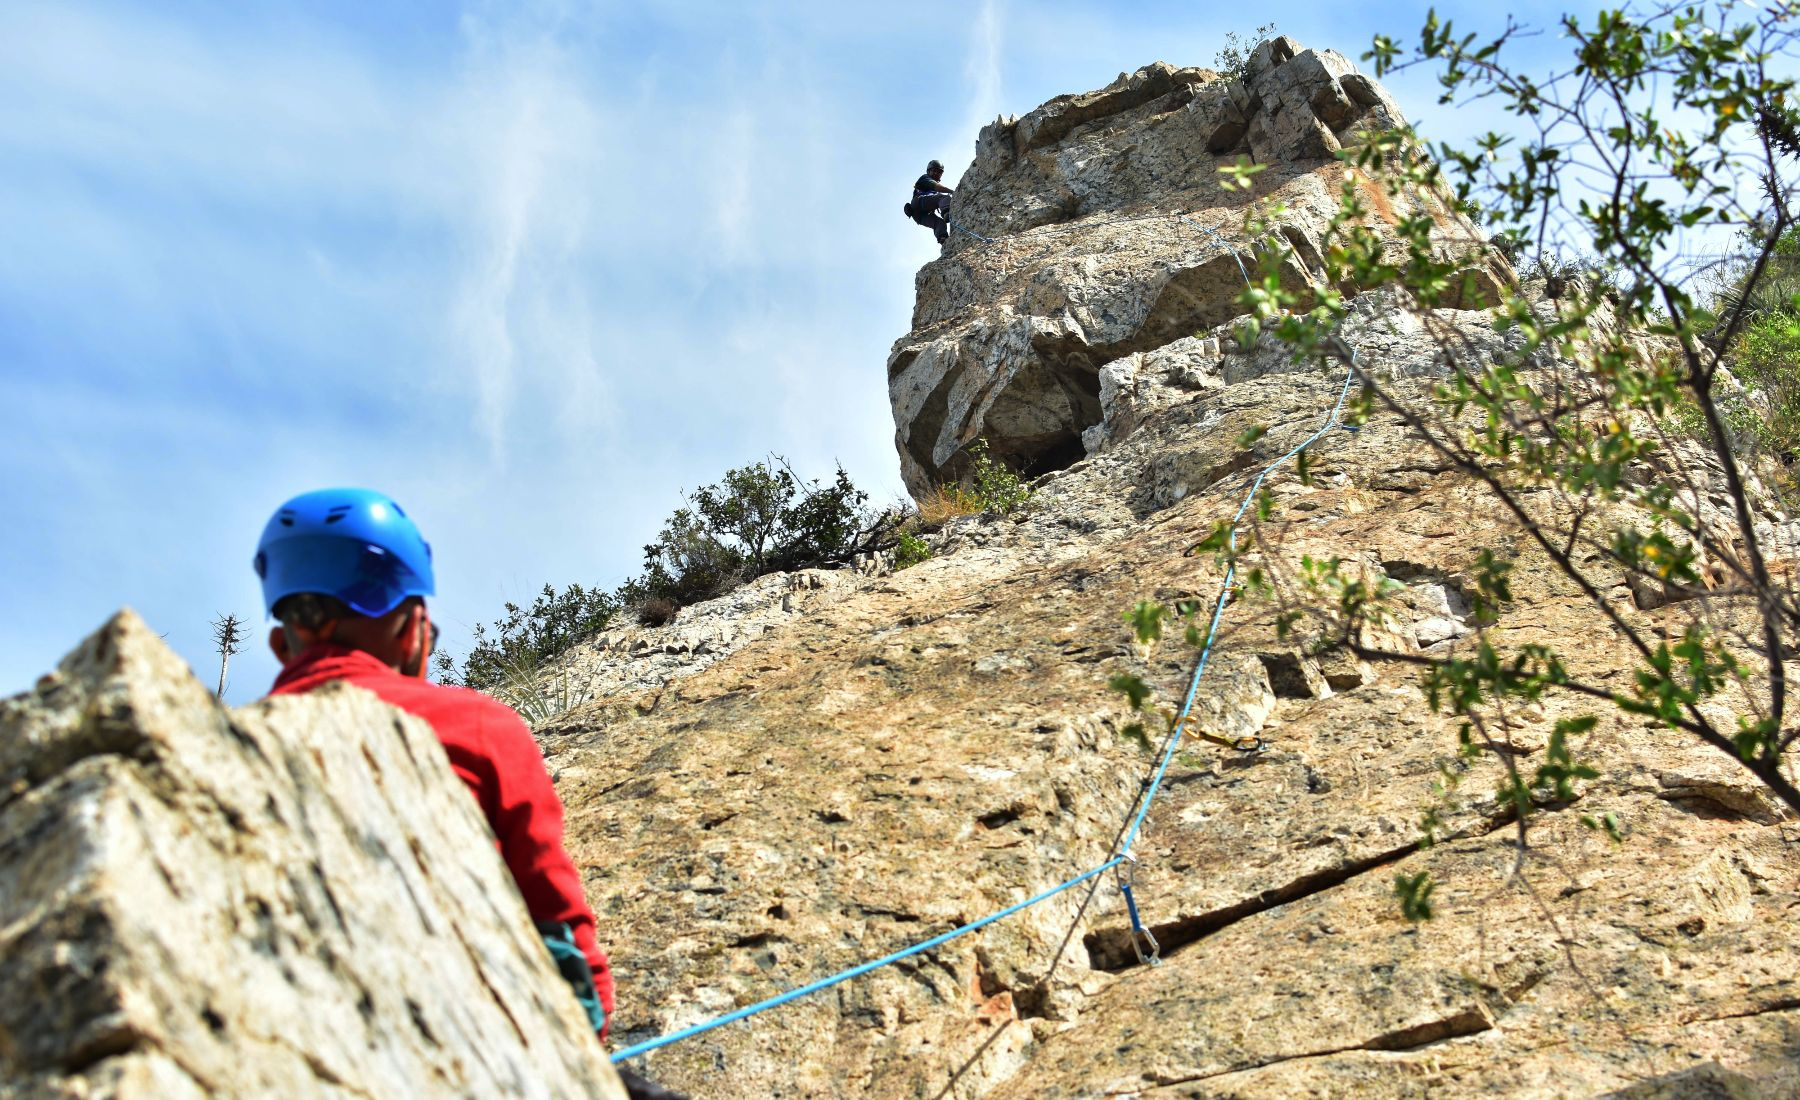 Climbing with belayer